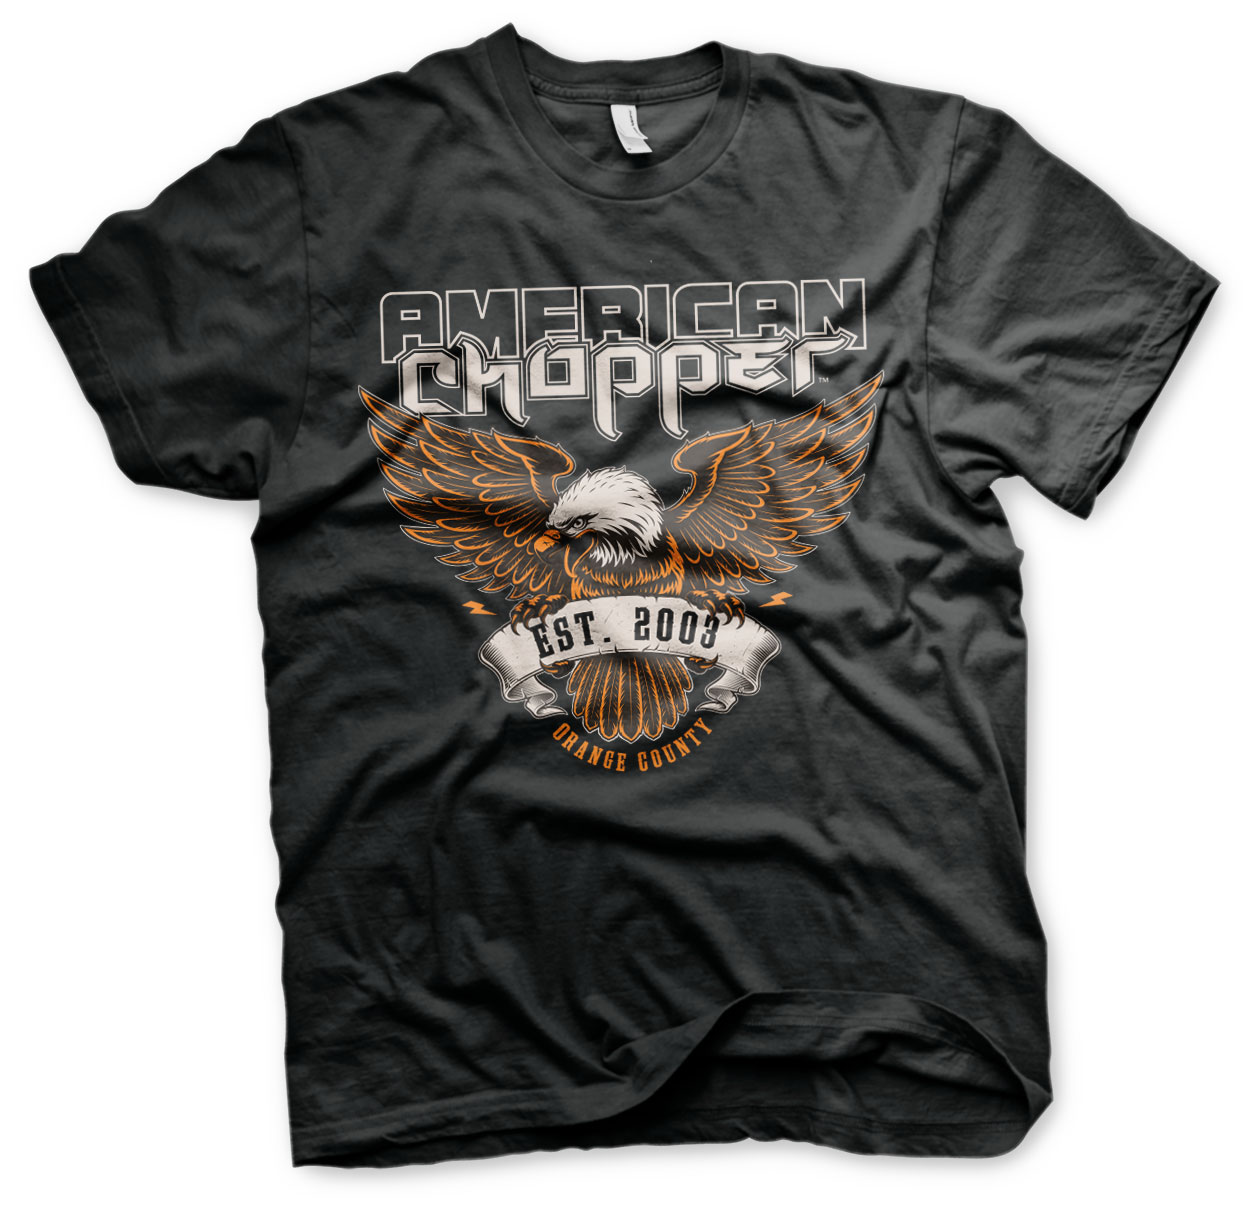 Orange County Choppers American Chopper